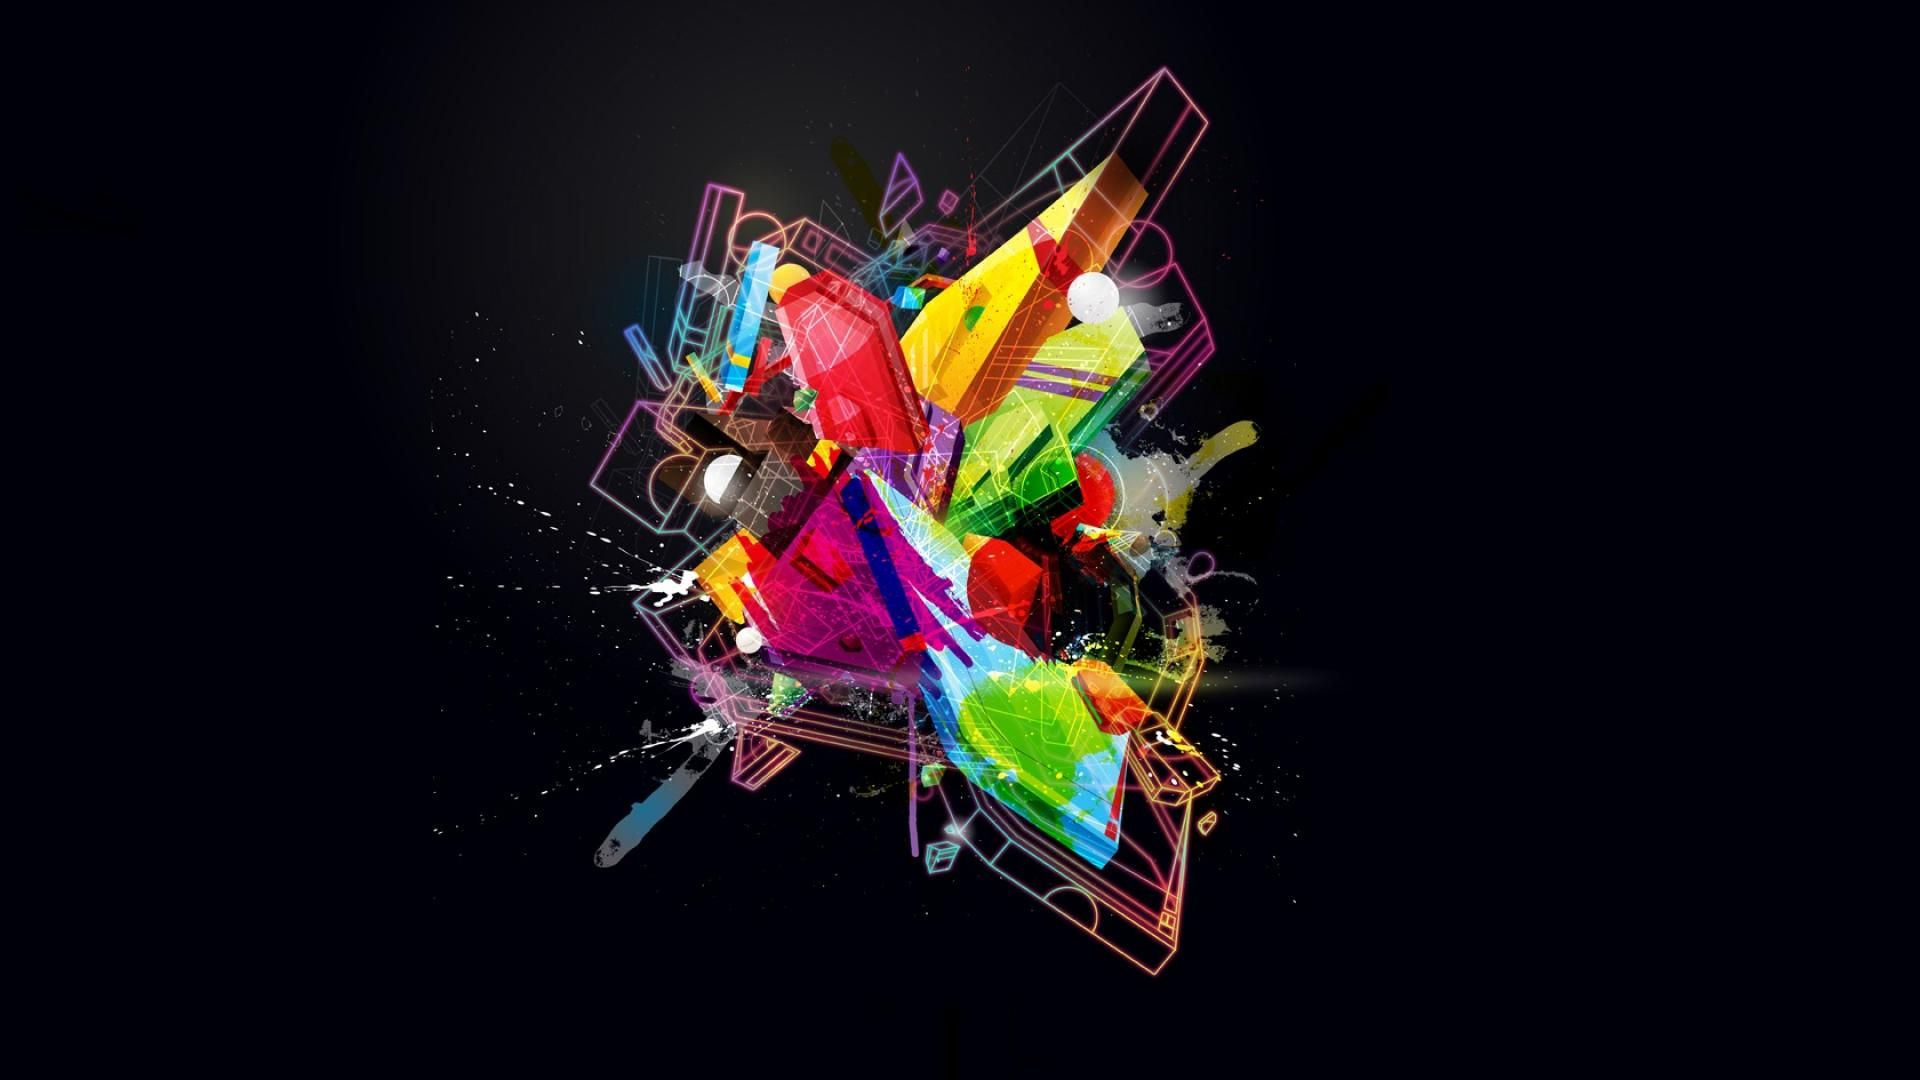 cool abstract art designs wallpaper cool backgrounds - http://www